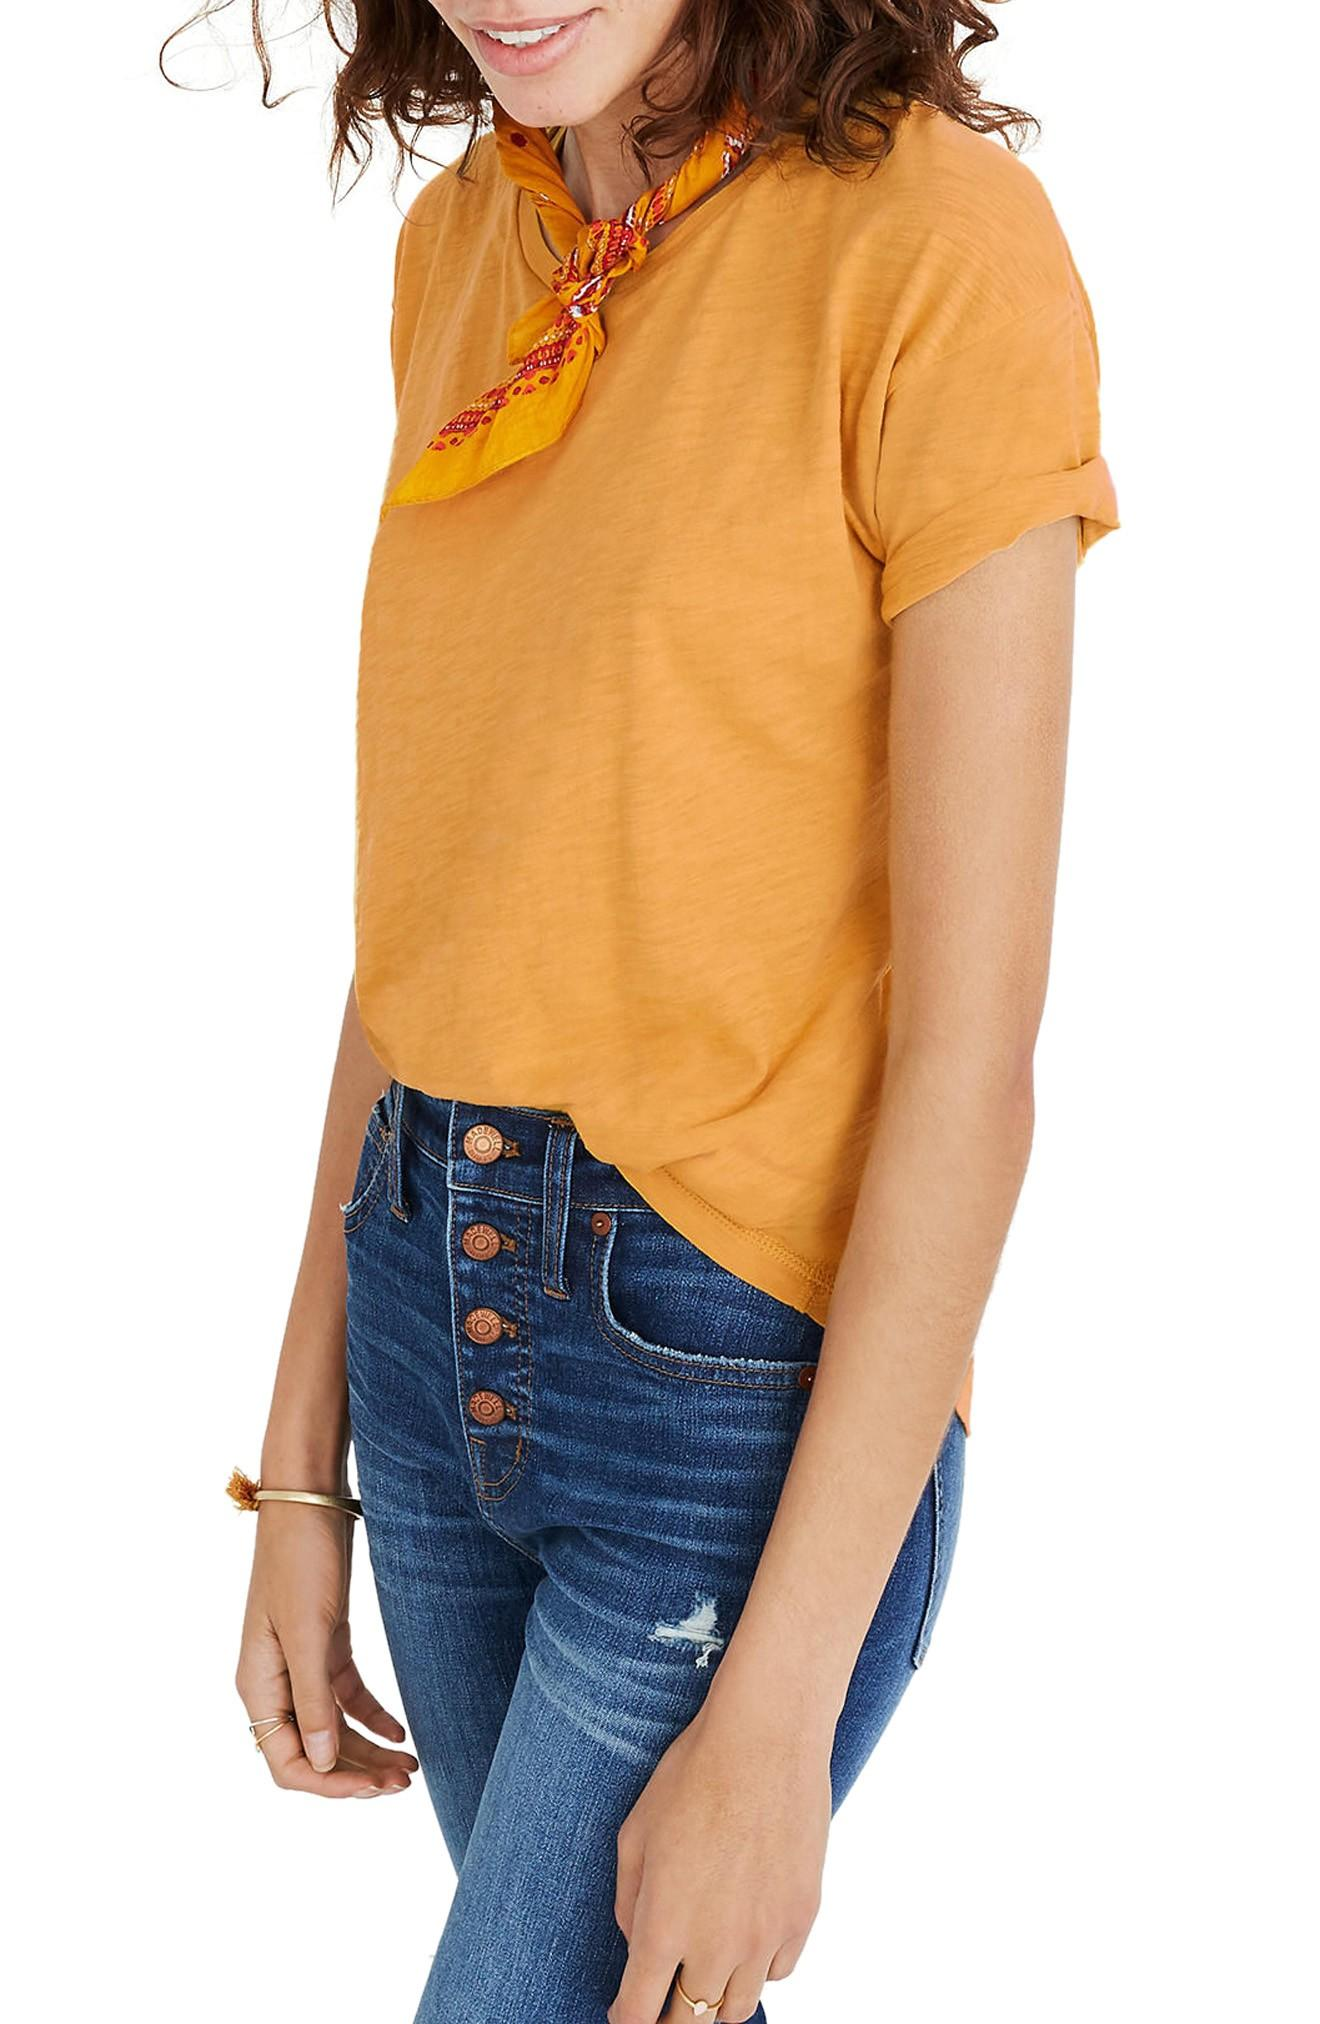 d49b1bc8c4 Madewell  Whisper  Cotton Crewneck Tee In Nectar Gold